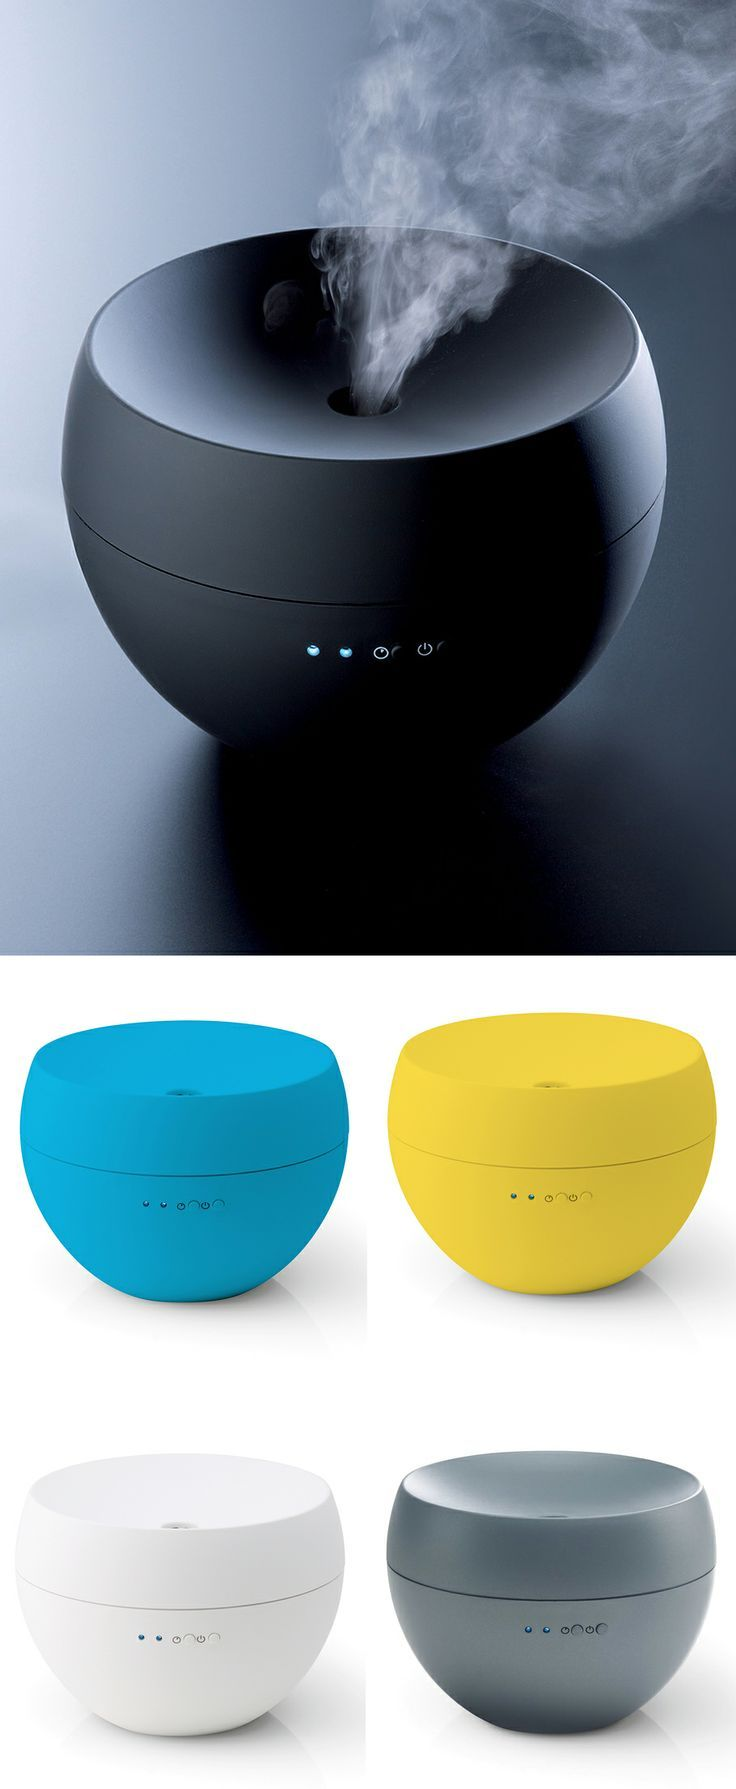 A perfect Aroma Diffuser that blends your essential oil and water to make fabulous fragrance